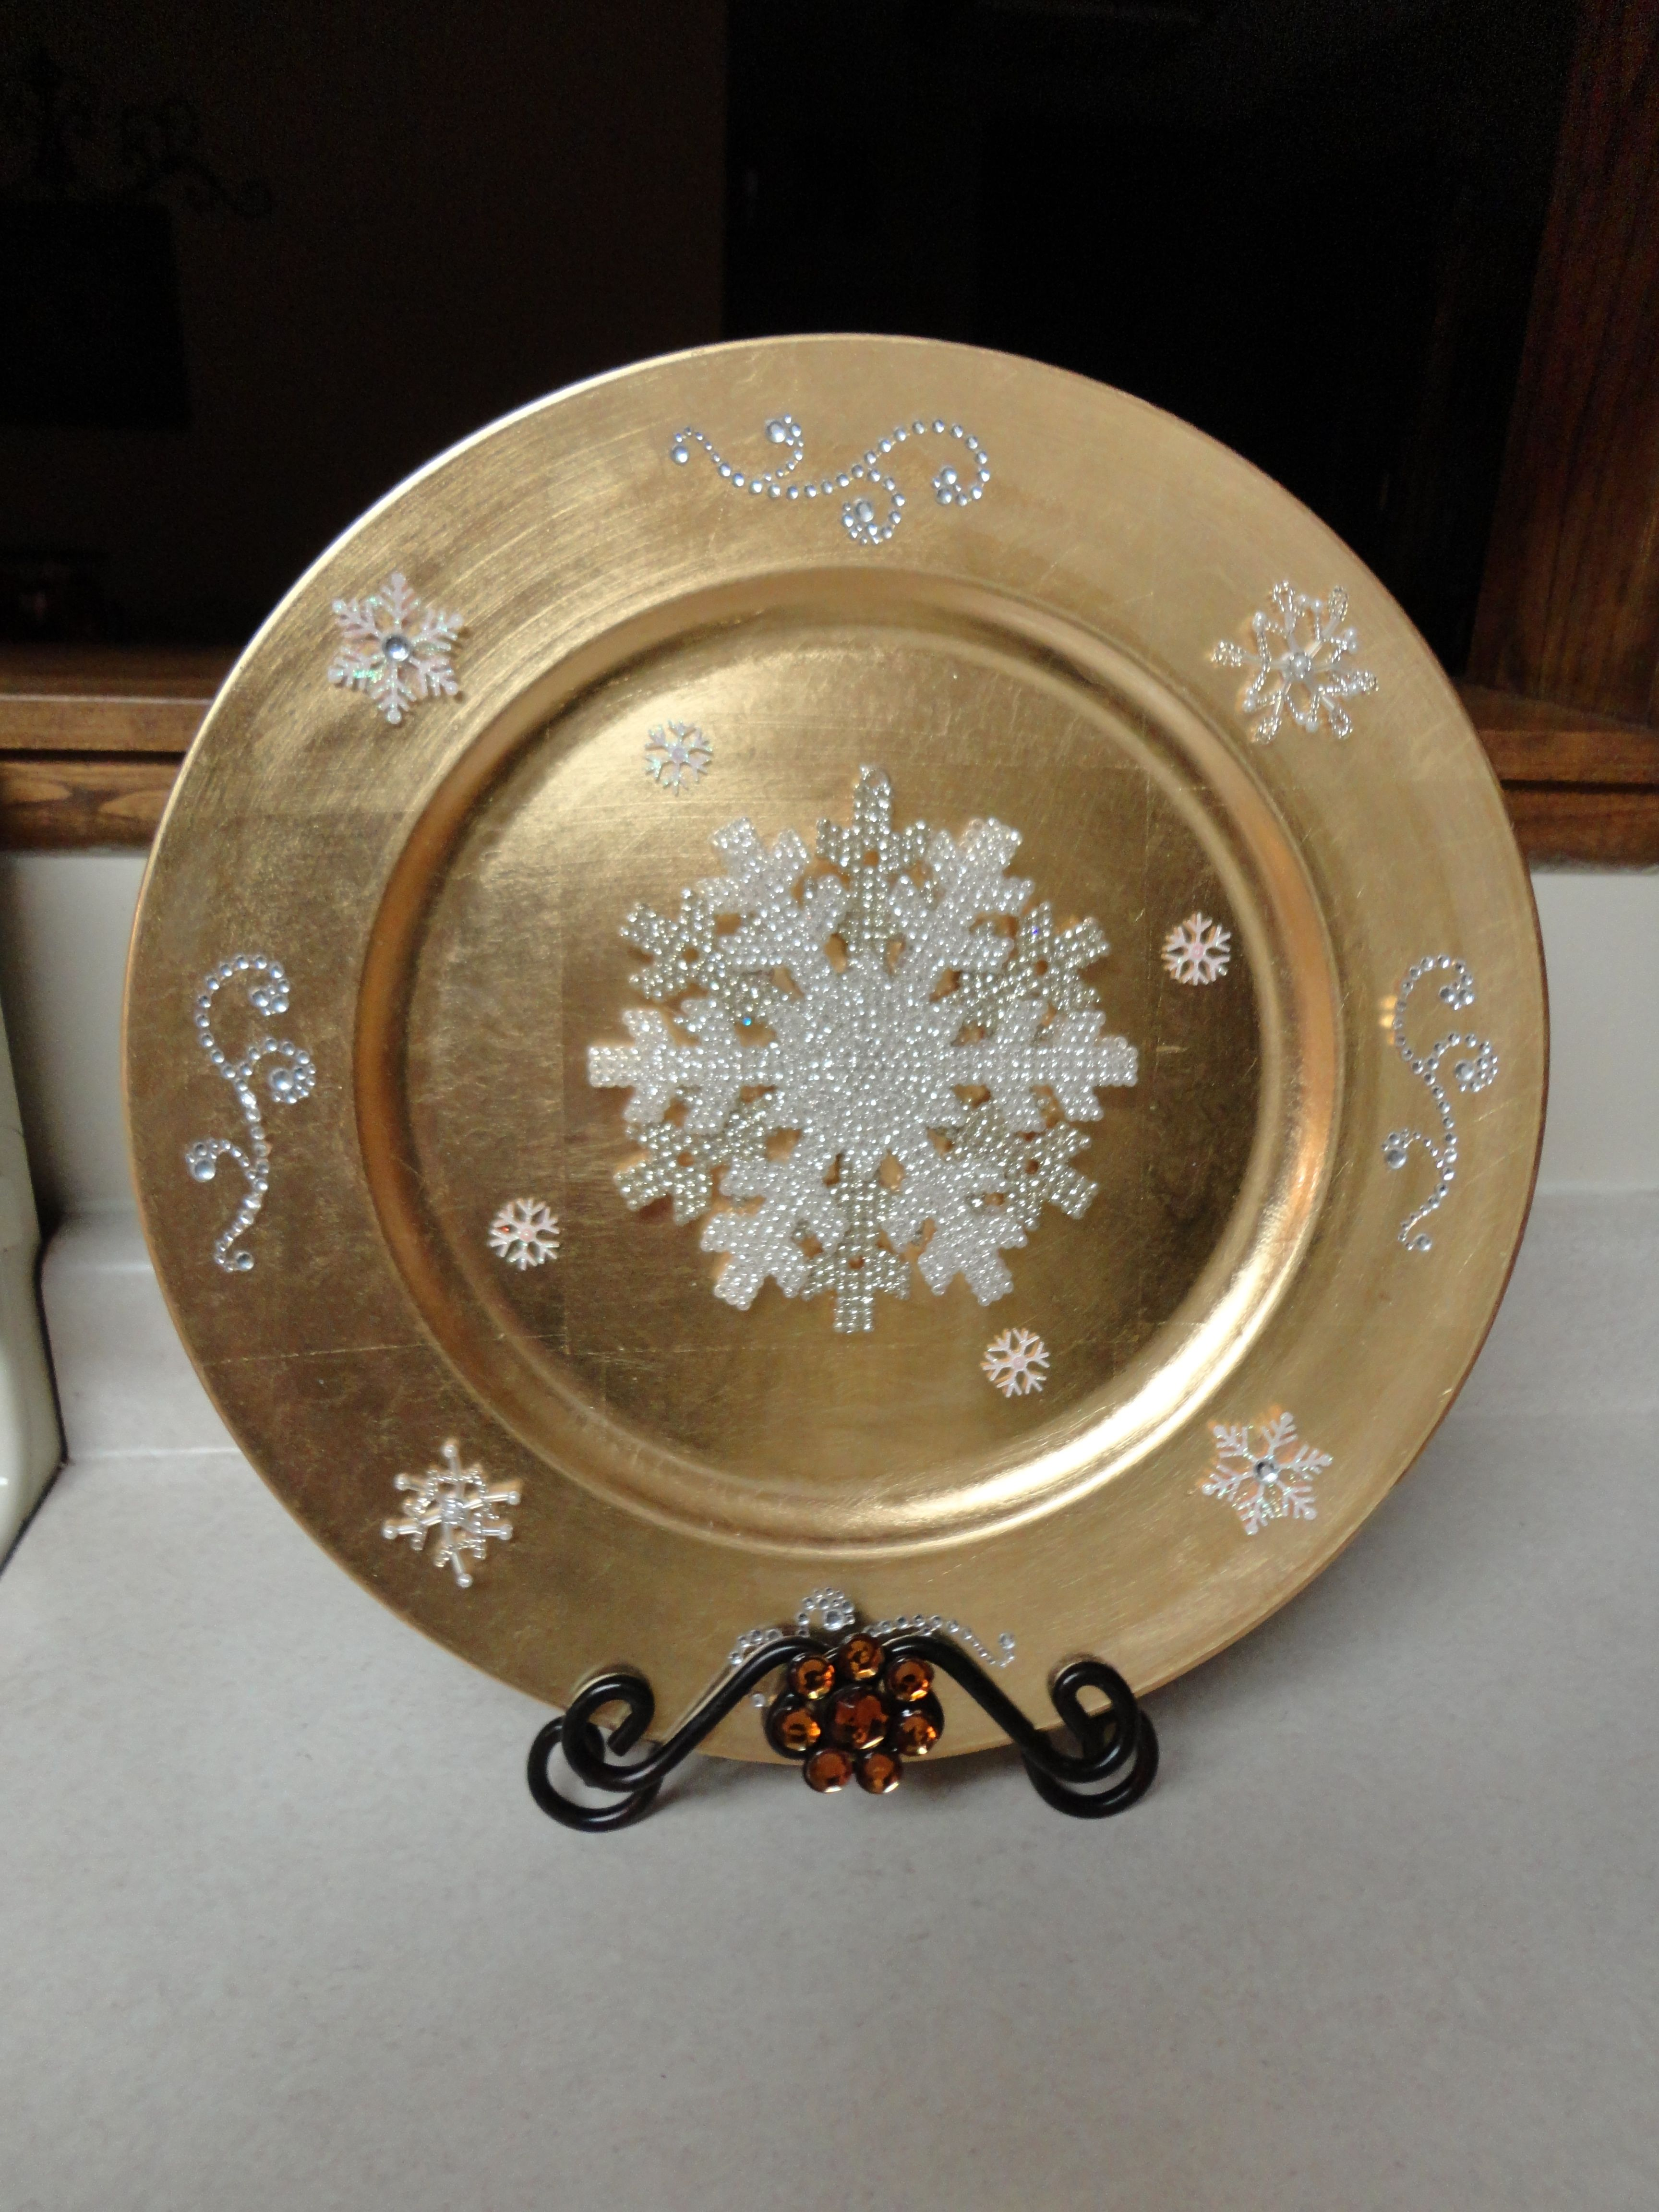 Winter Charger Plate Decor